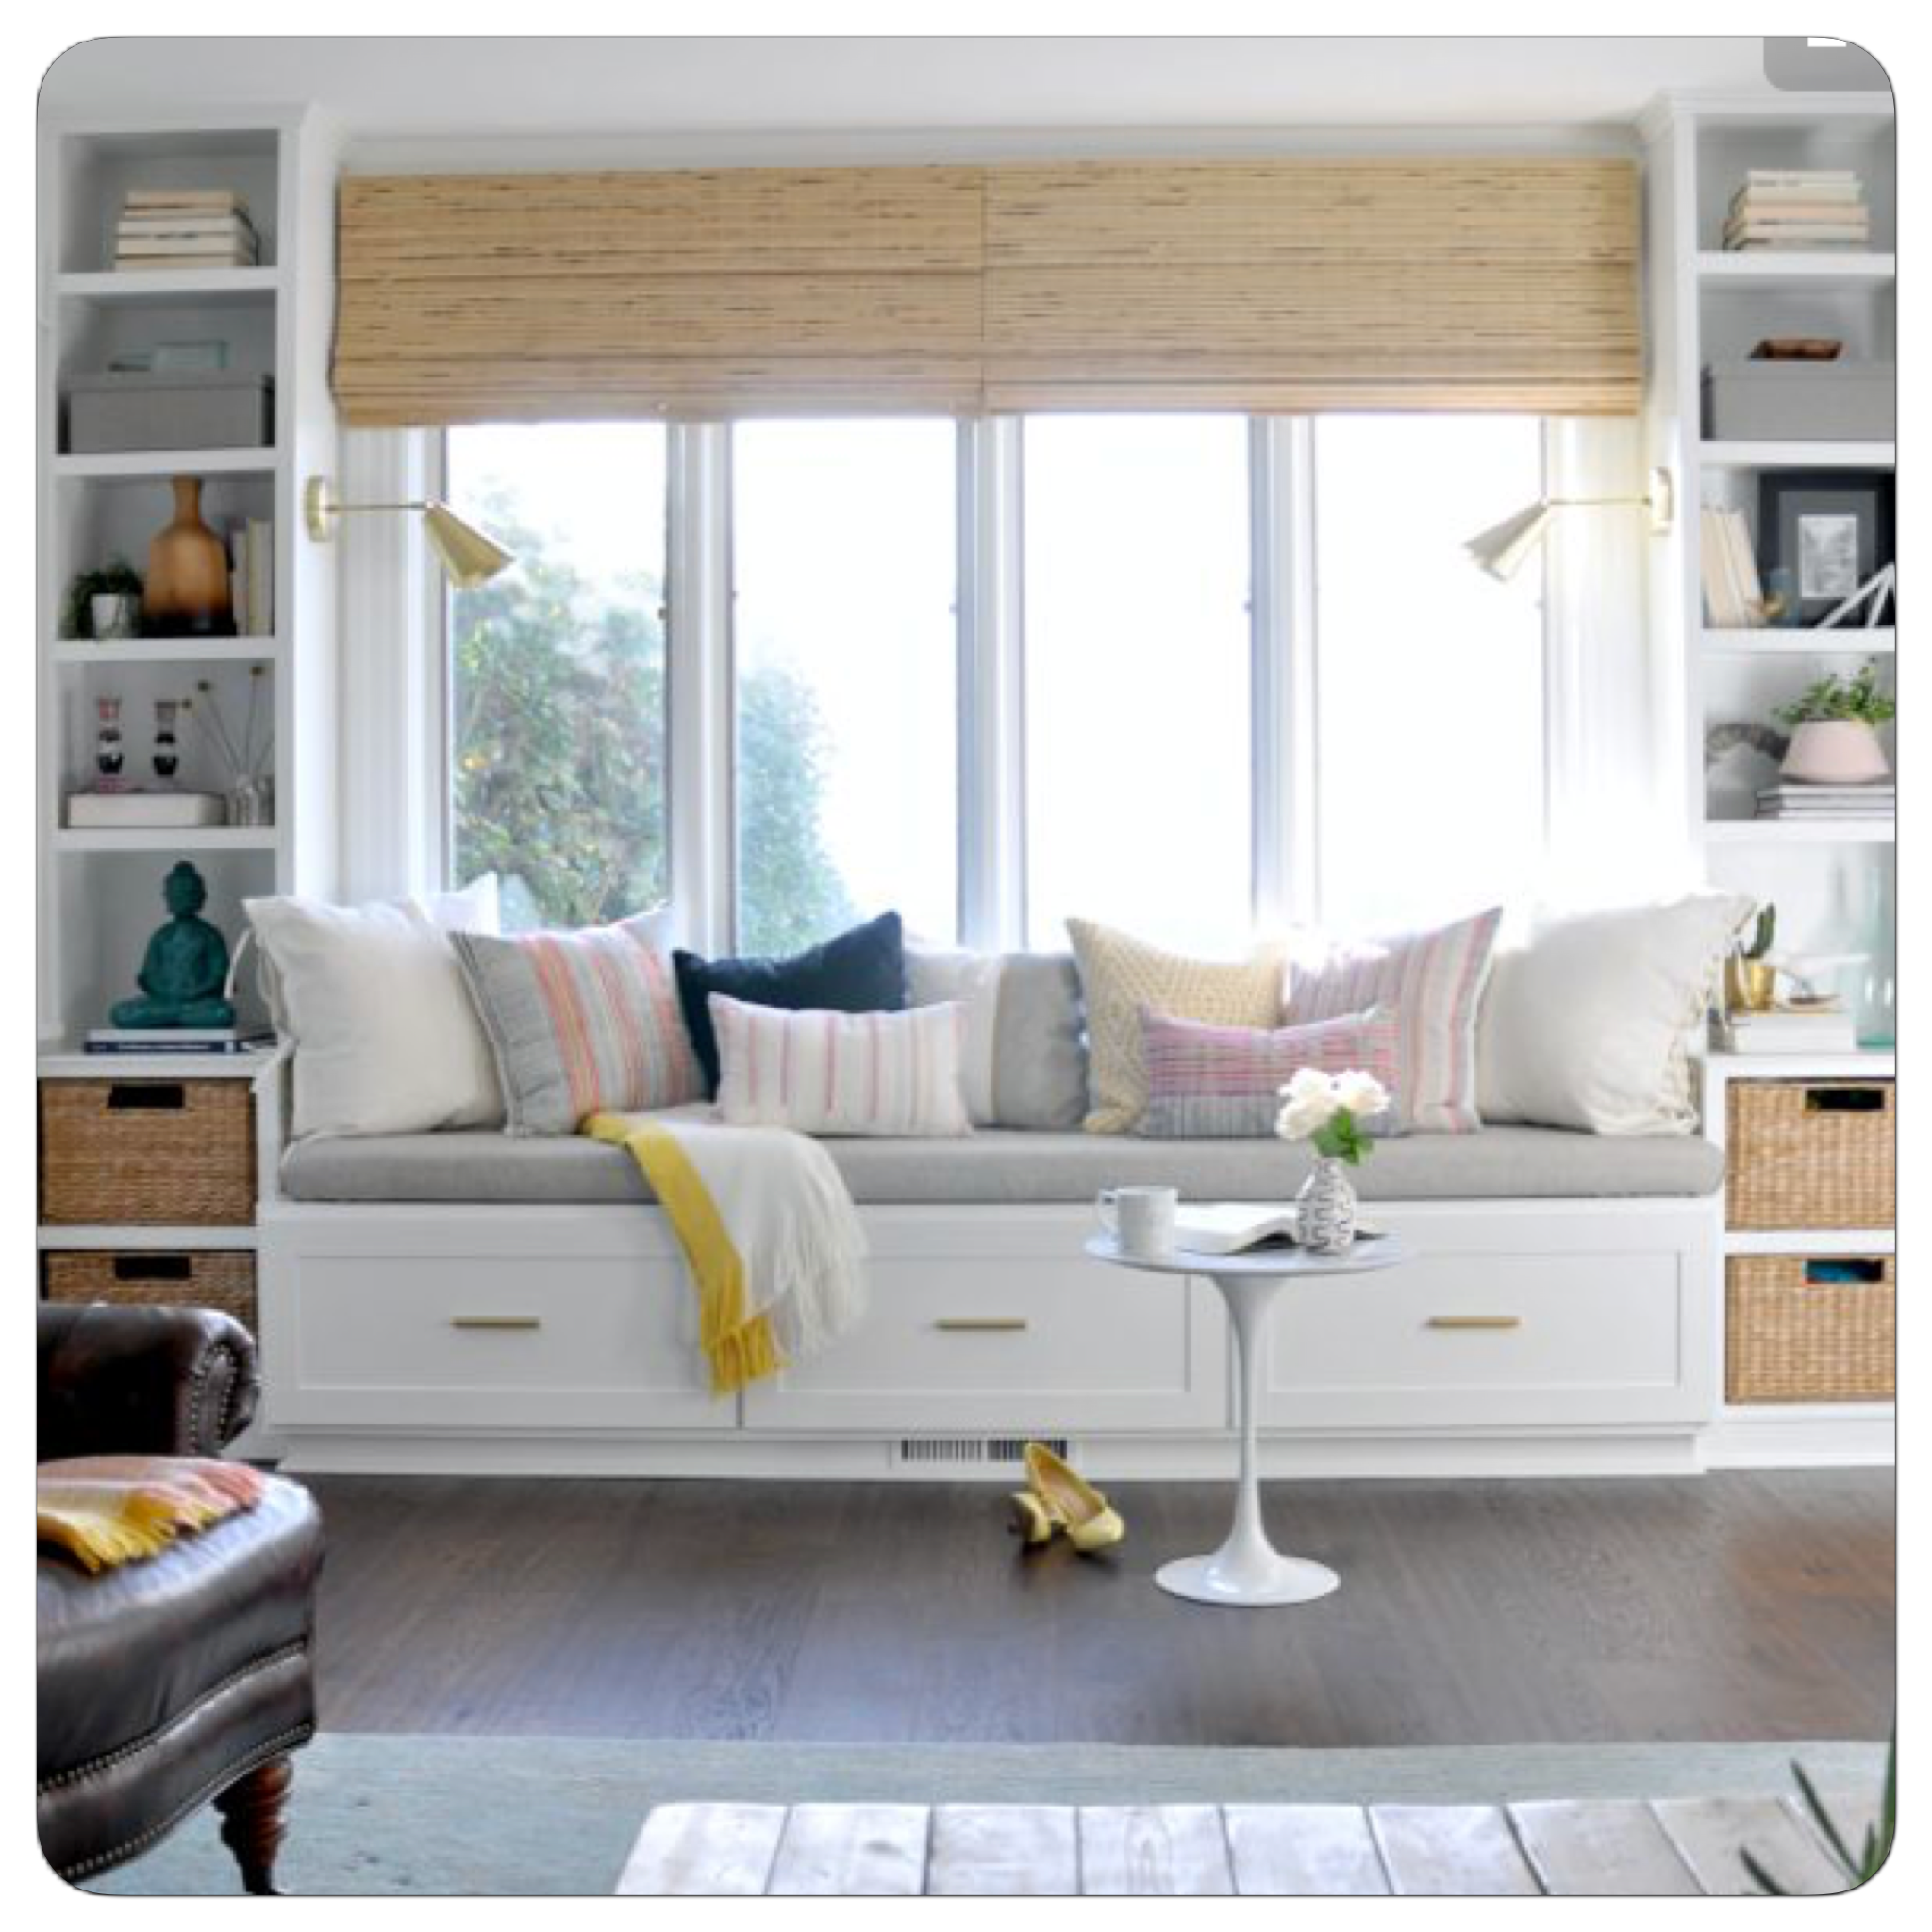 Living Room Built In Storage: Pin By Erin Stewart On Living Room